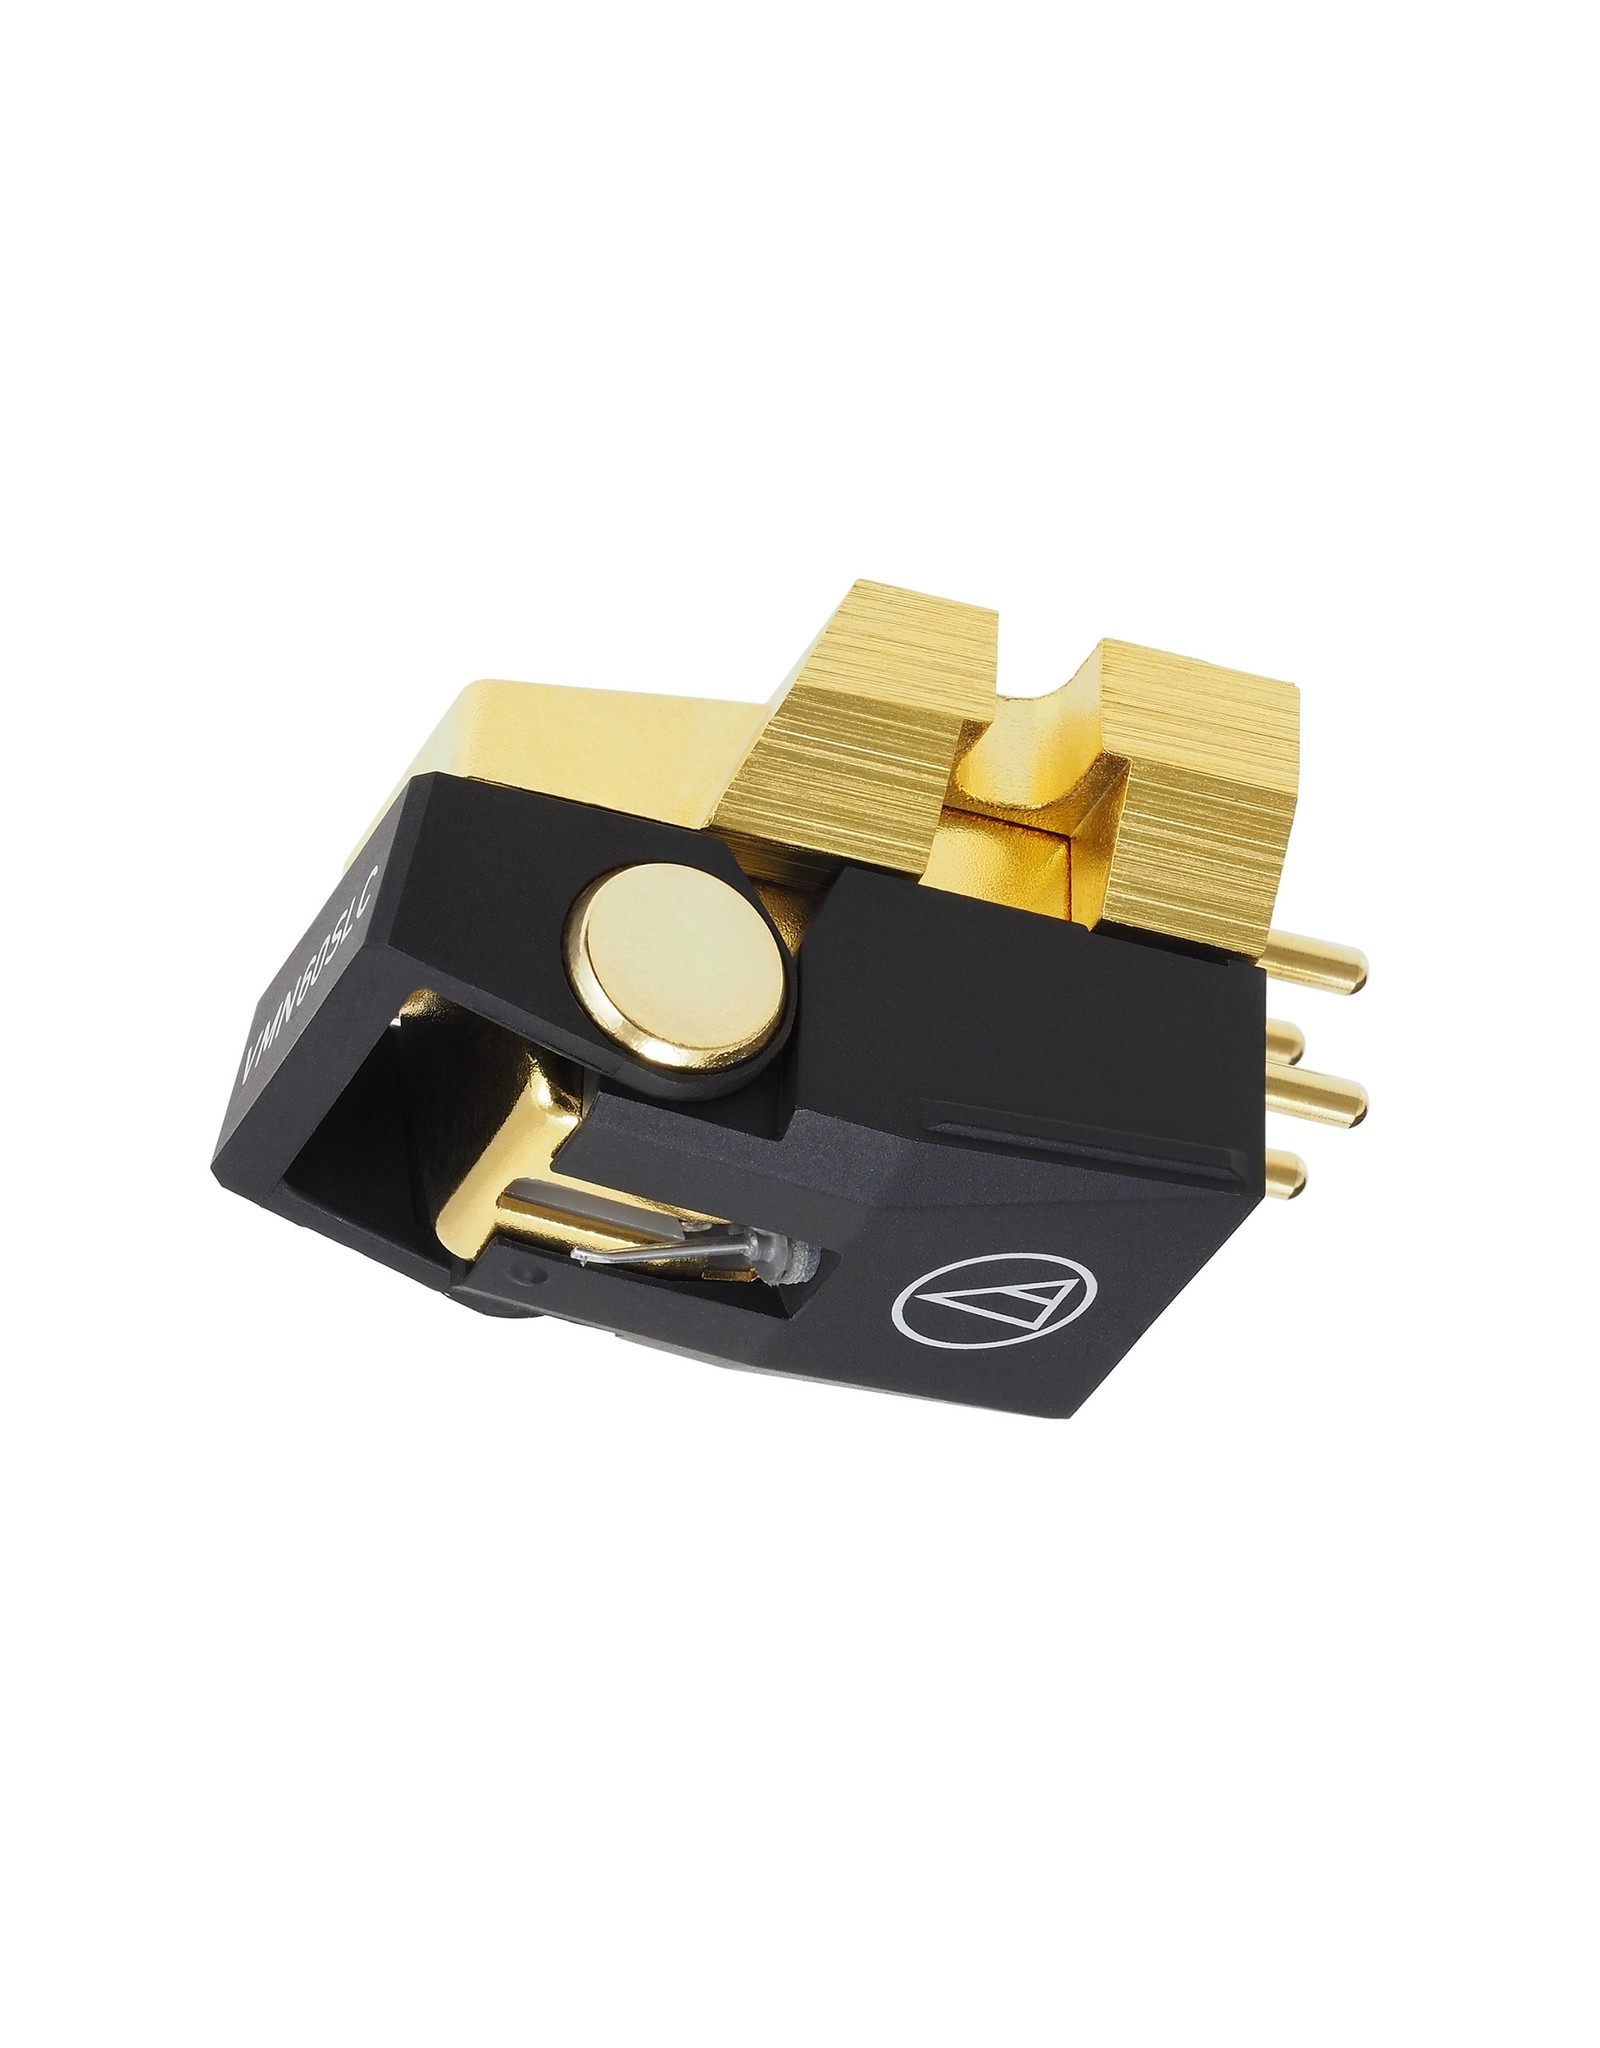 Audio-Technica Audio-Technica VM760SLC Special Line Contact Phono Cartridge